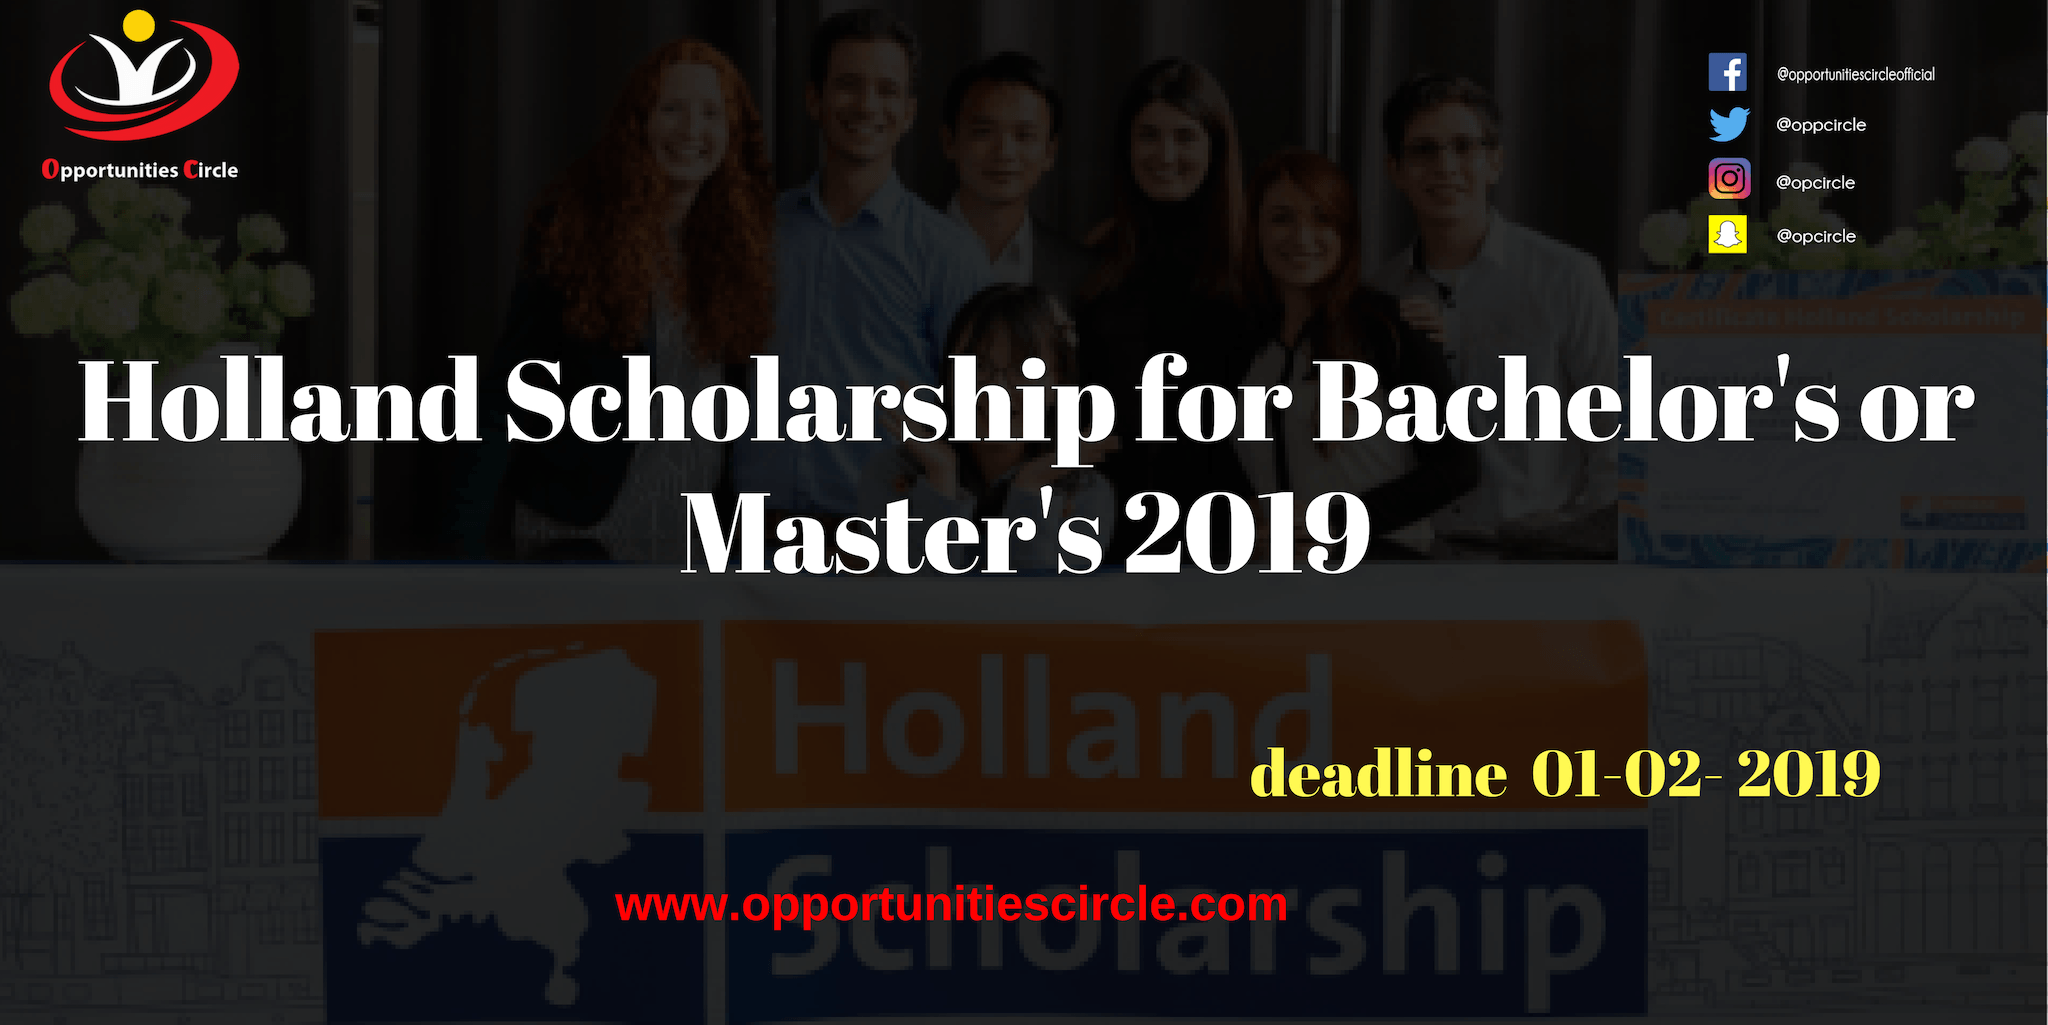 Holland Scholarship for Bachelors or Masters 2019 - Holland Scholarship for Bachelor's or Master's 2019